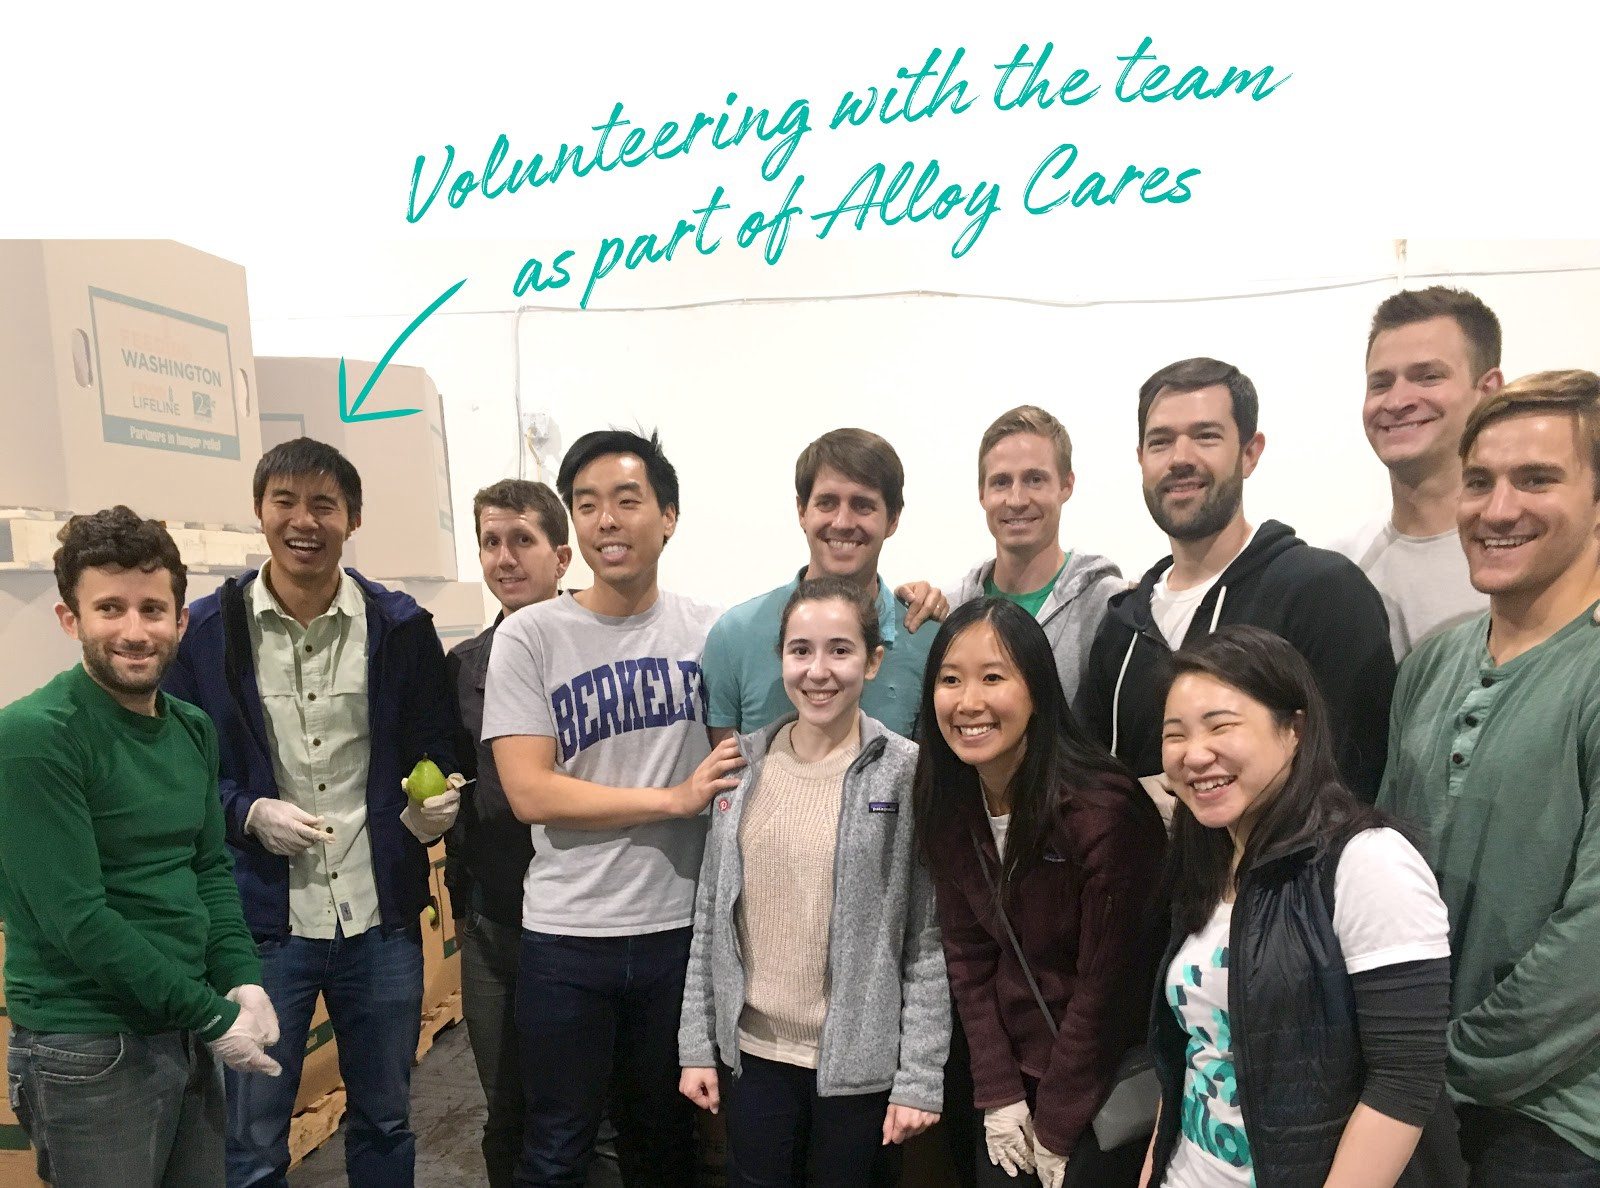 Volunteering with Alloy